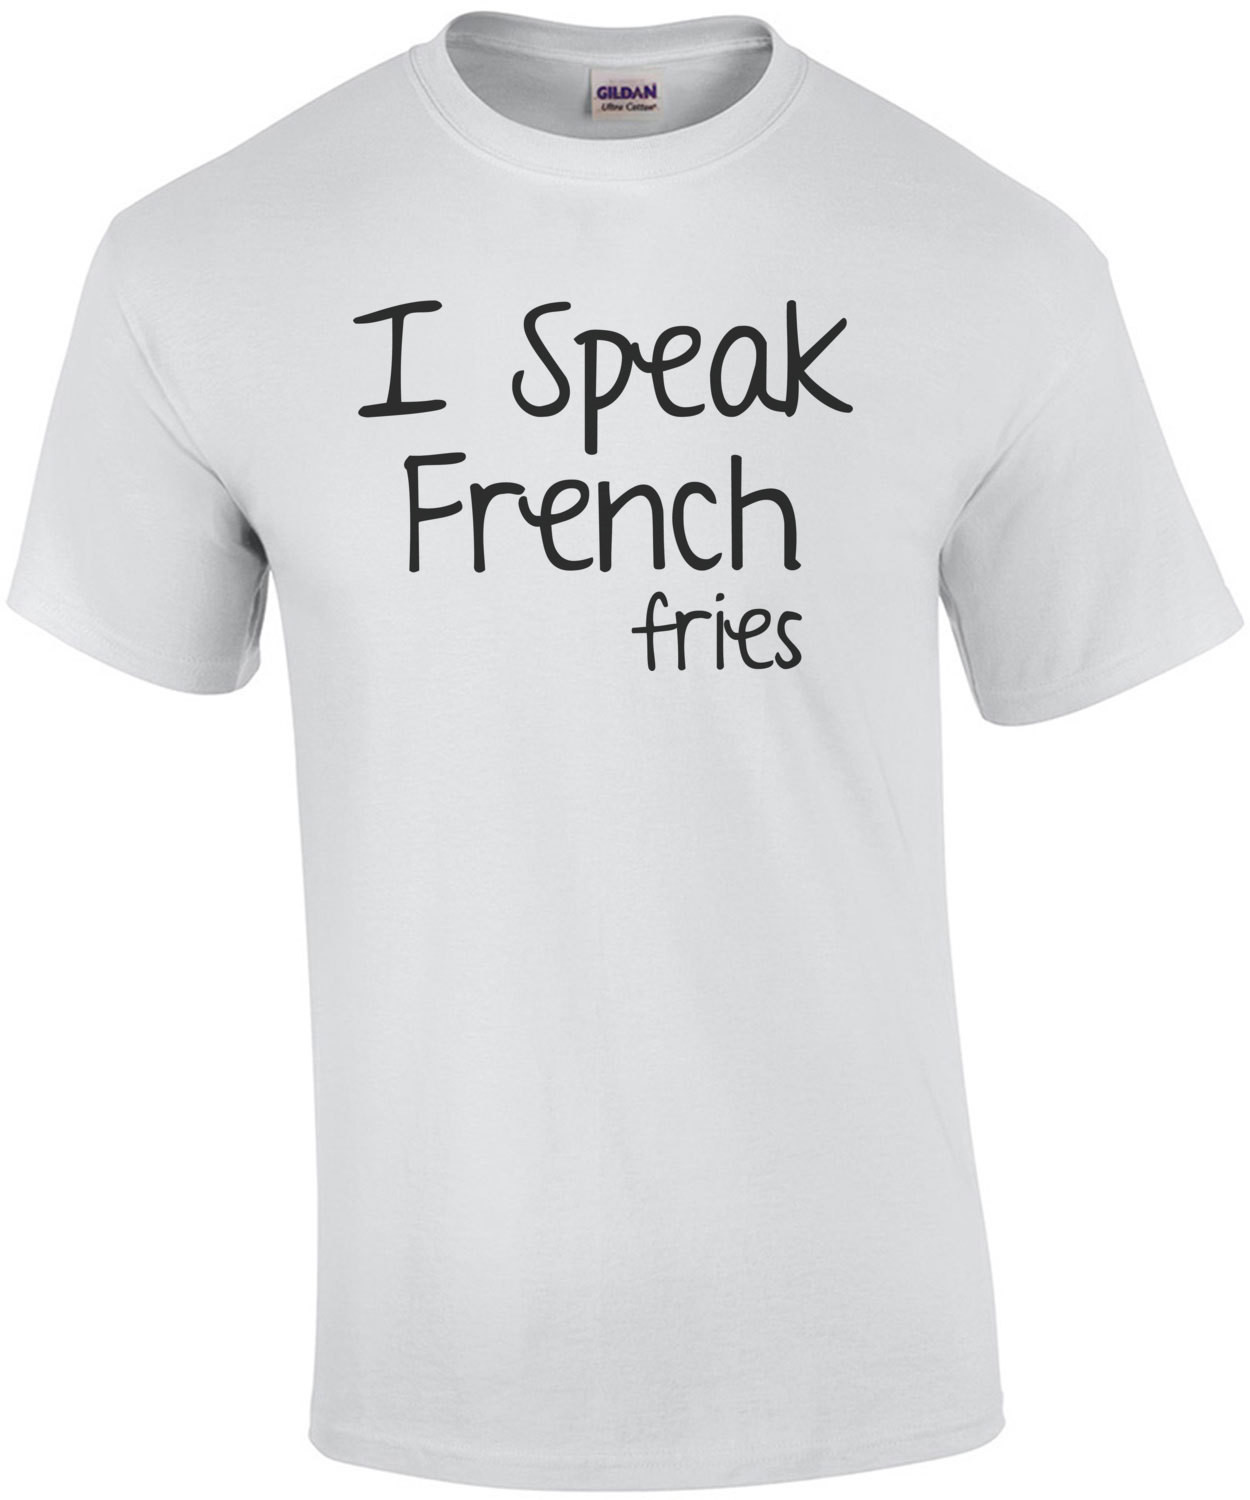 I Speak French... Fries T-Shirt